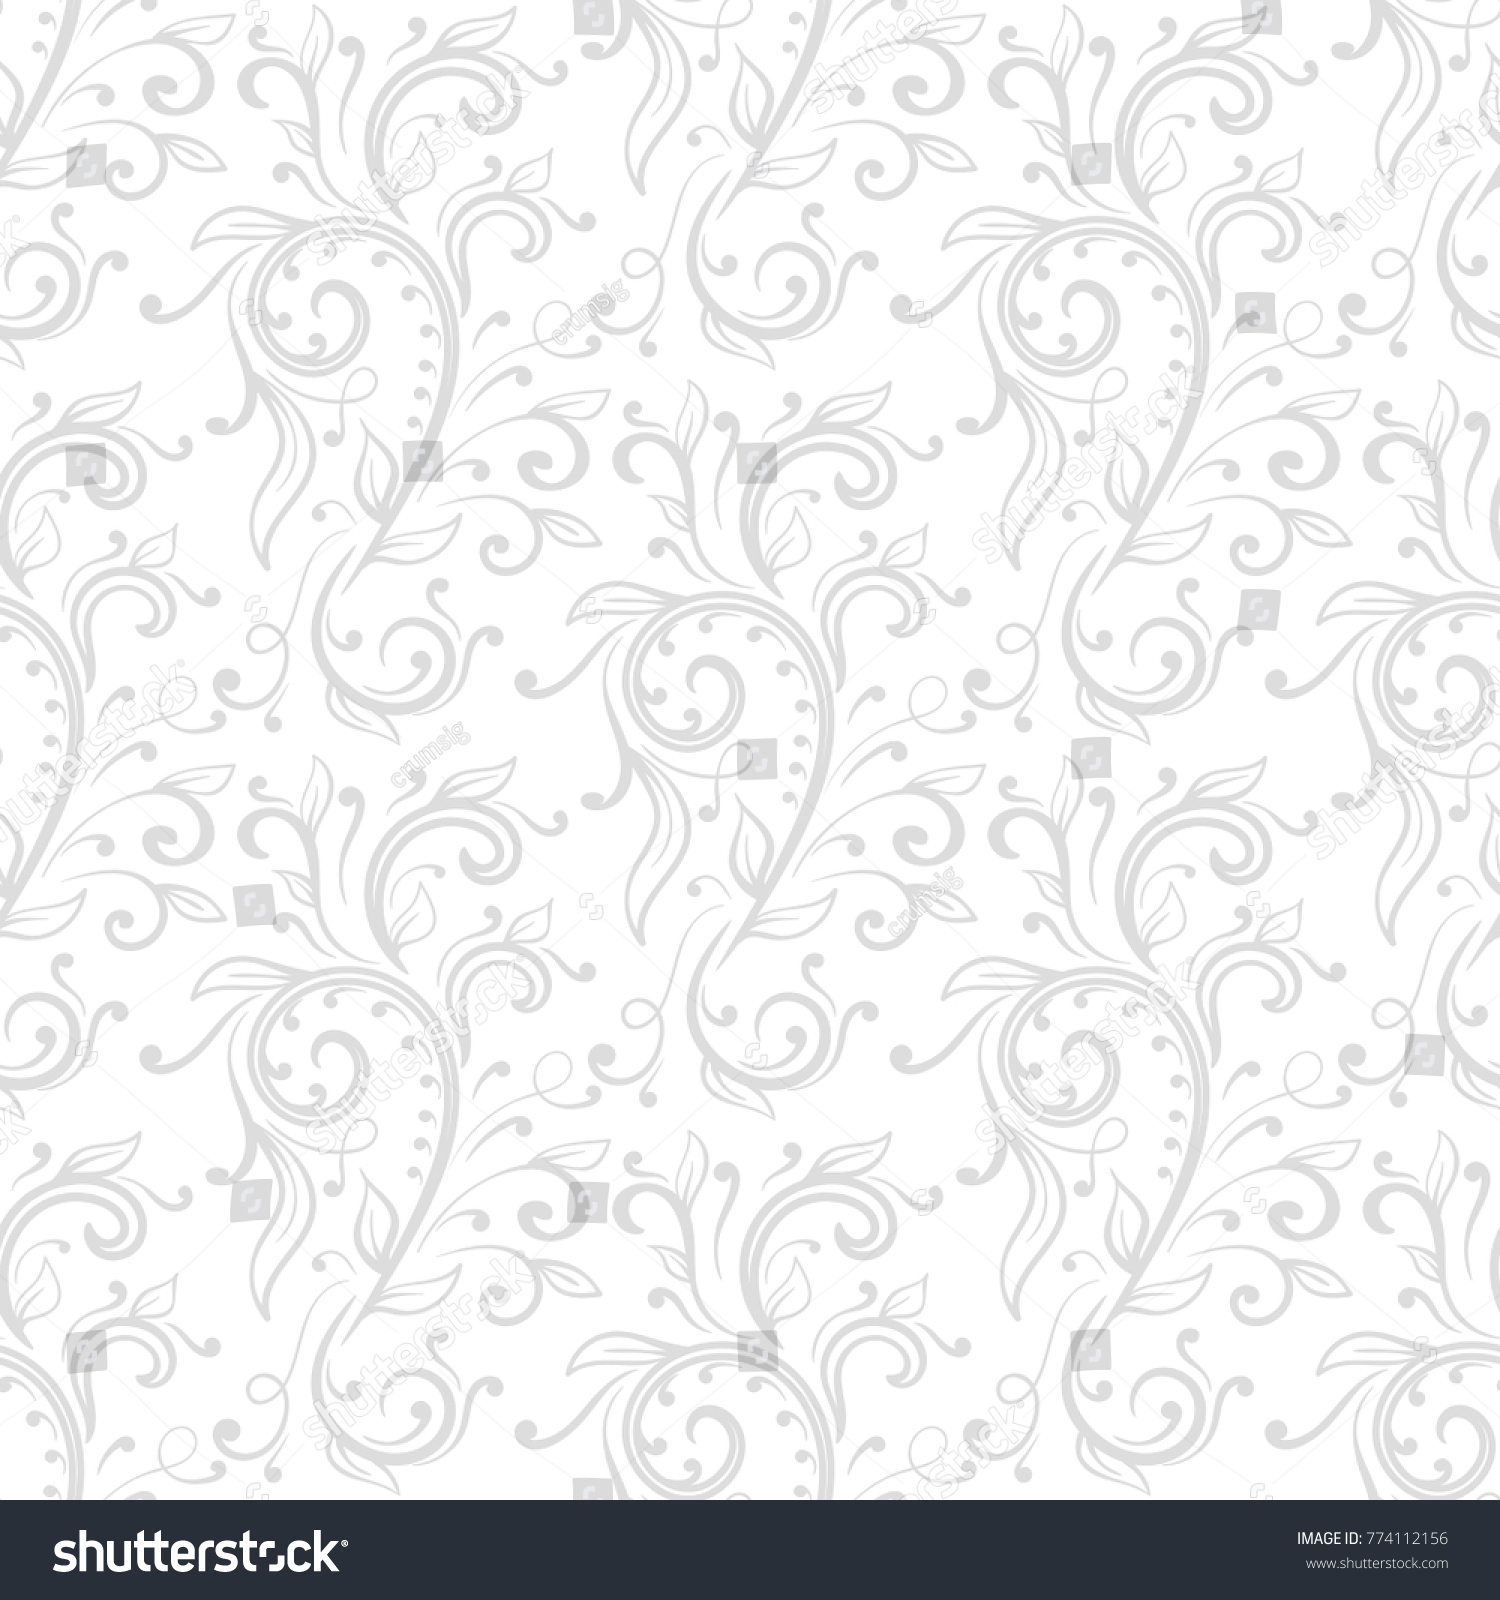 Floral Ornaments Gray White Seamless Pattern Stock Vector Royalty